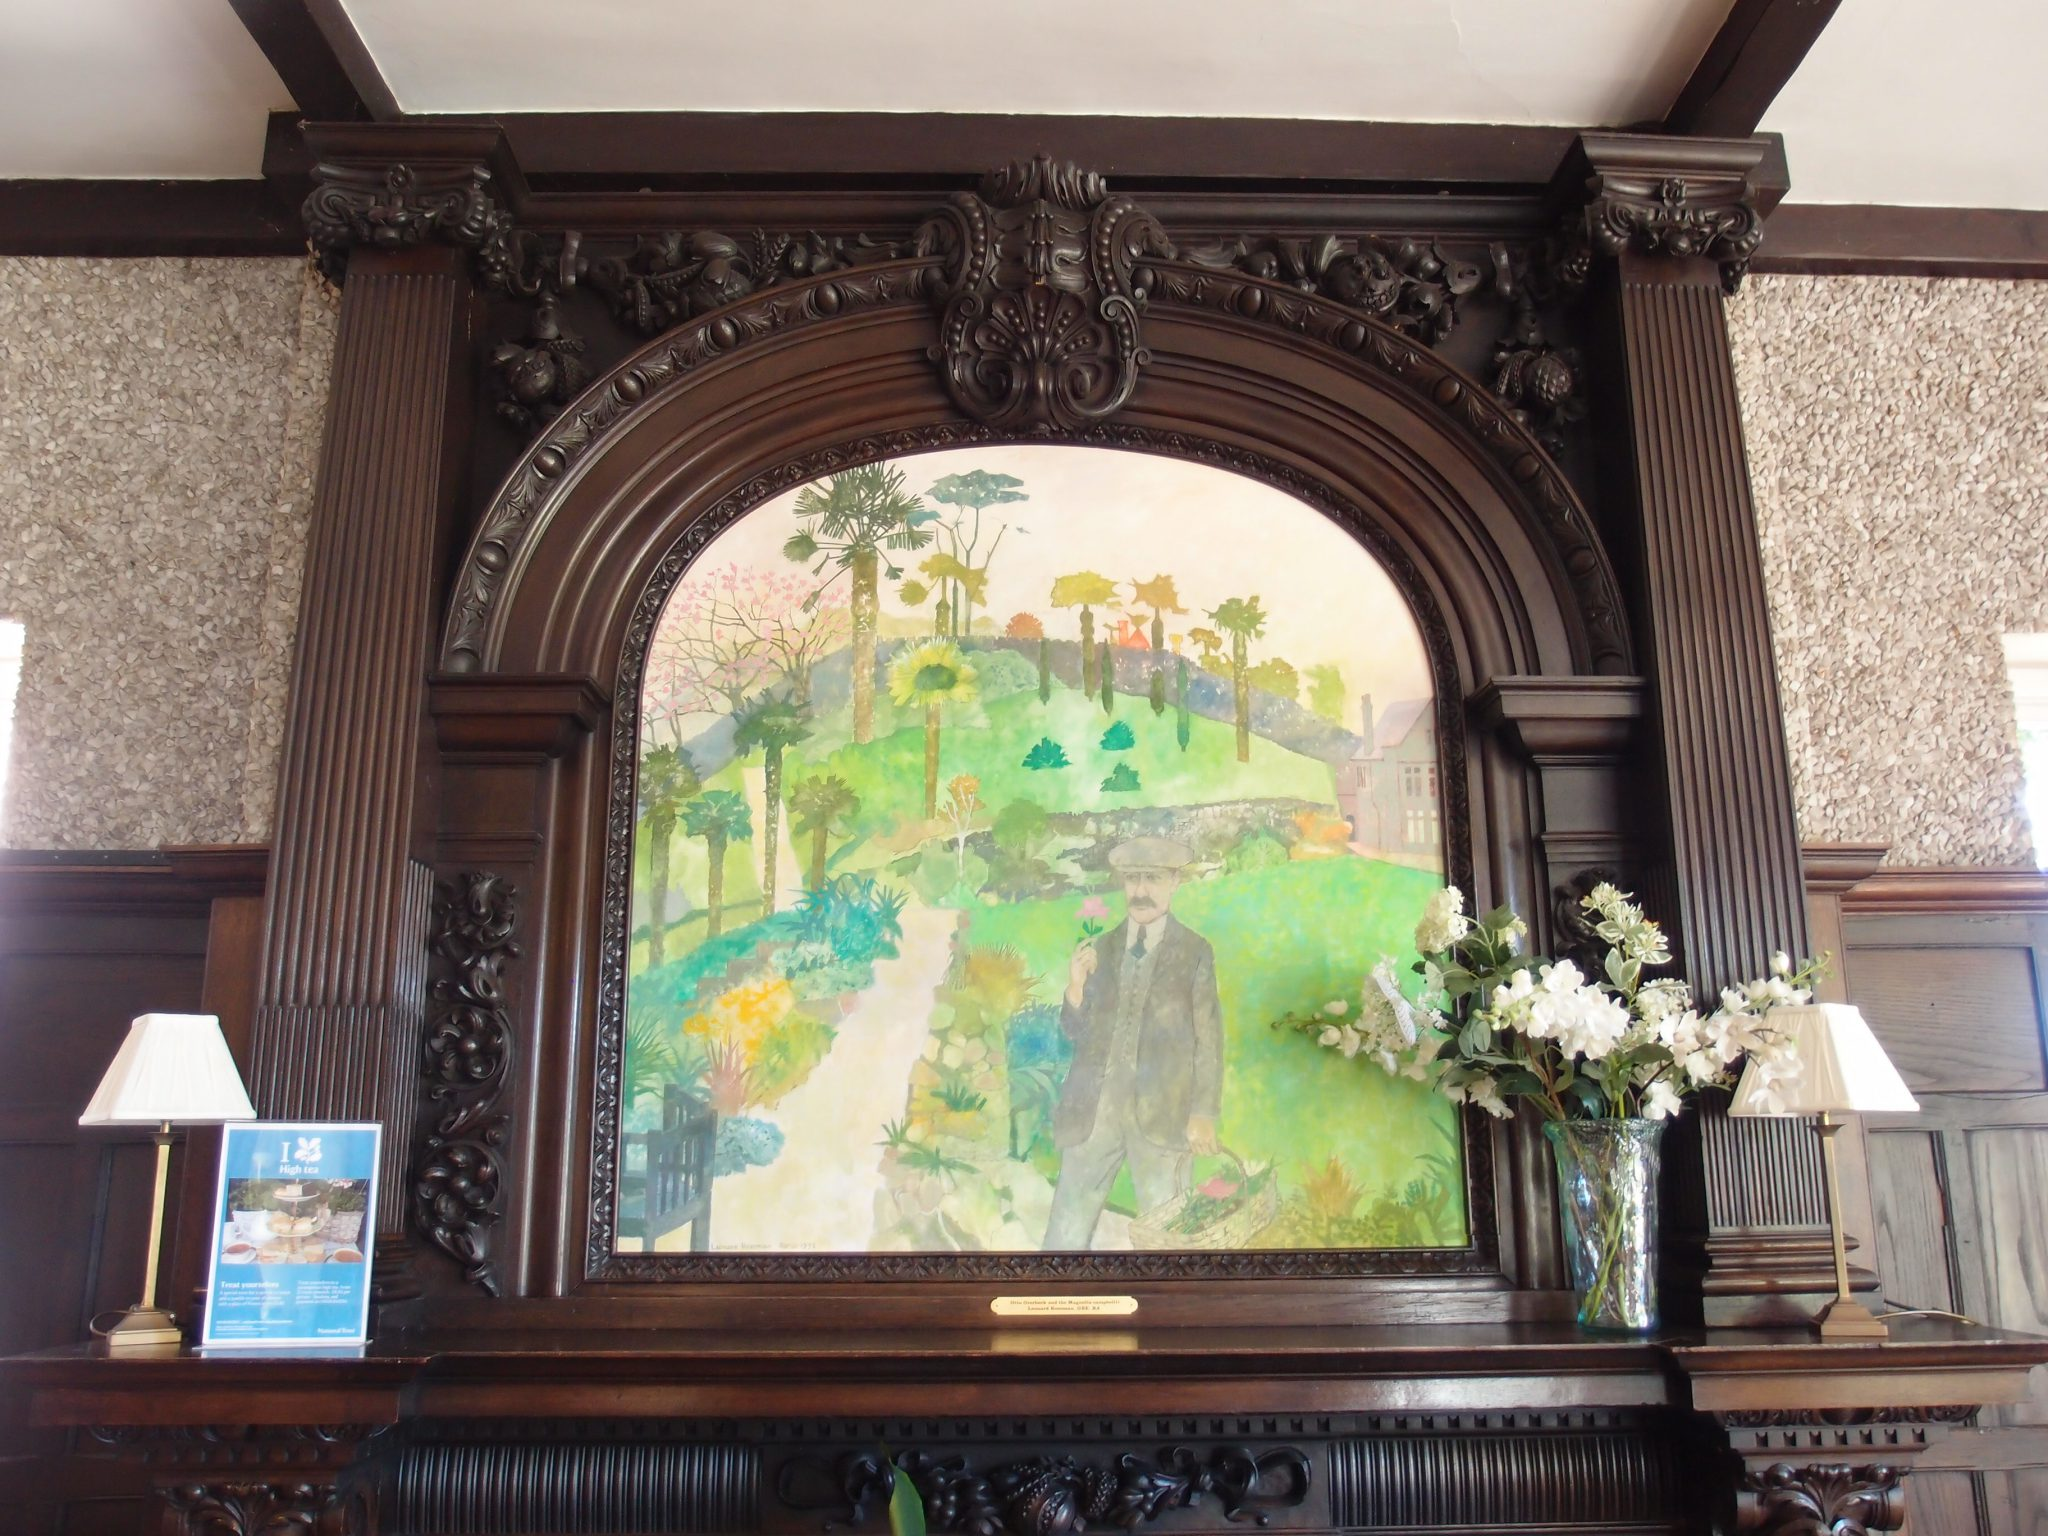 Inside the Tea Room proper, this painting by Leonard Rosoman, of Otto Overbeck in his garden, adorns the mantle.